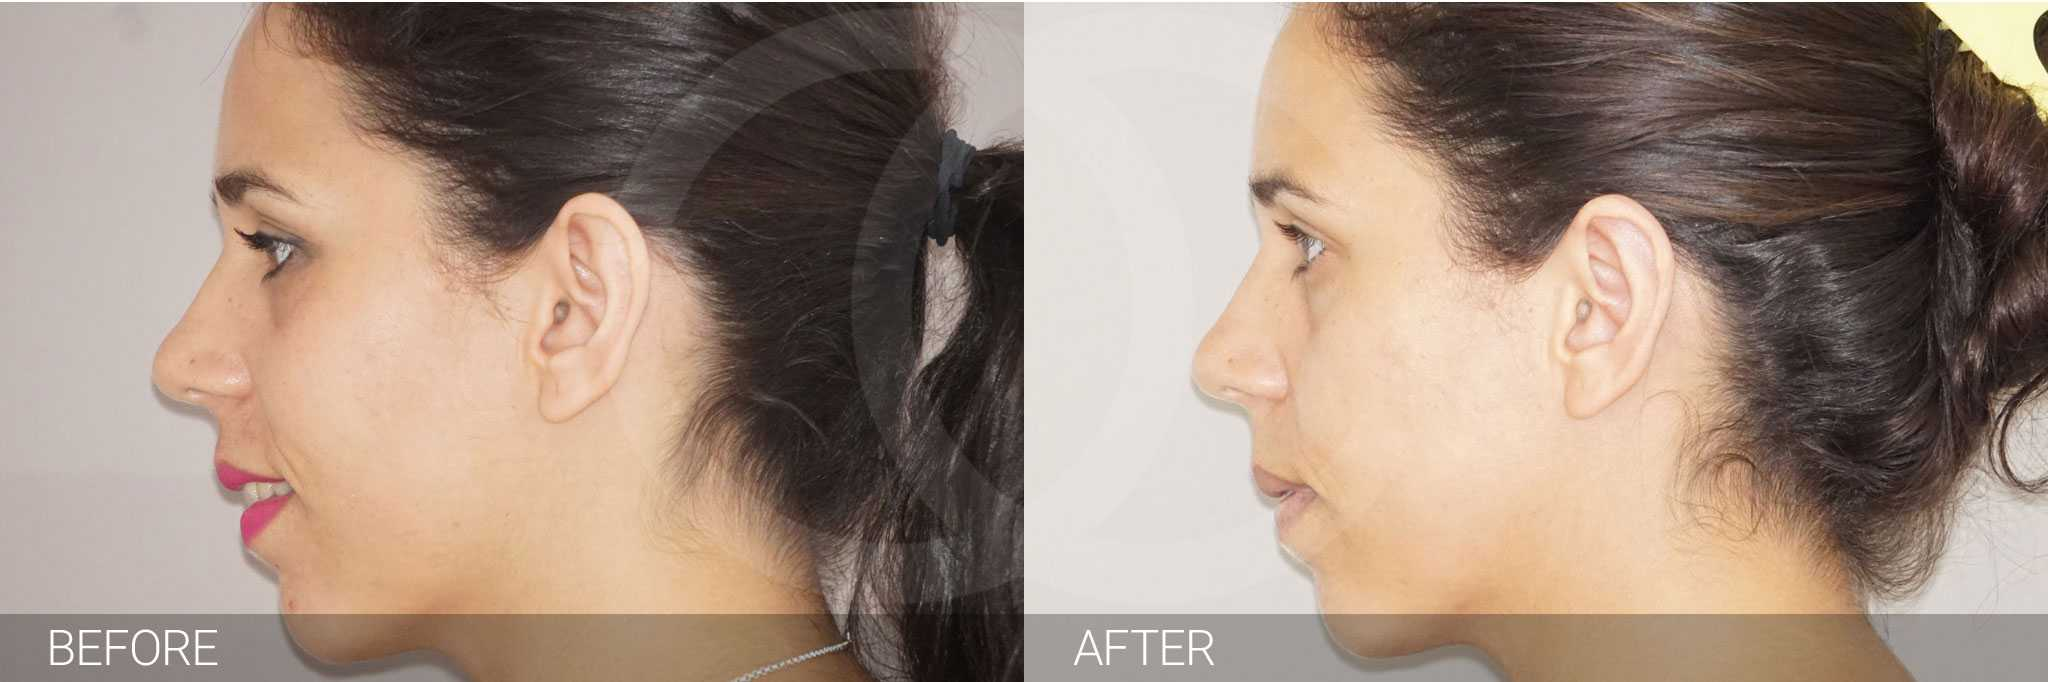 Ear Correction Ear Reshaping Antihelixplasty ante/post-op III